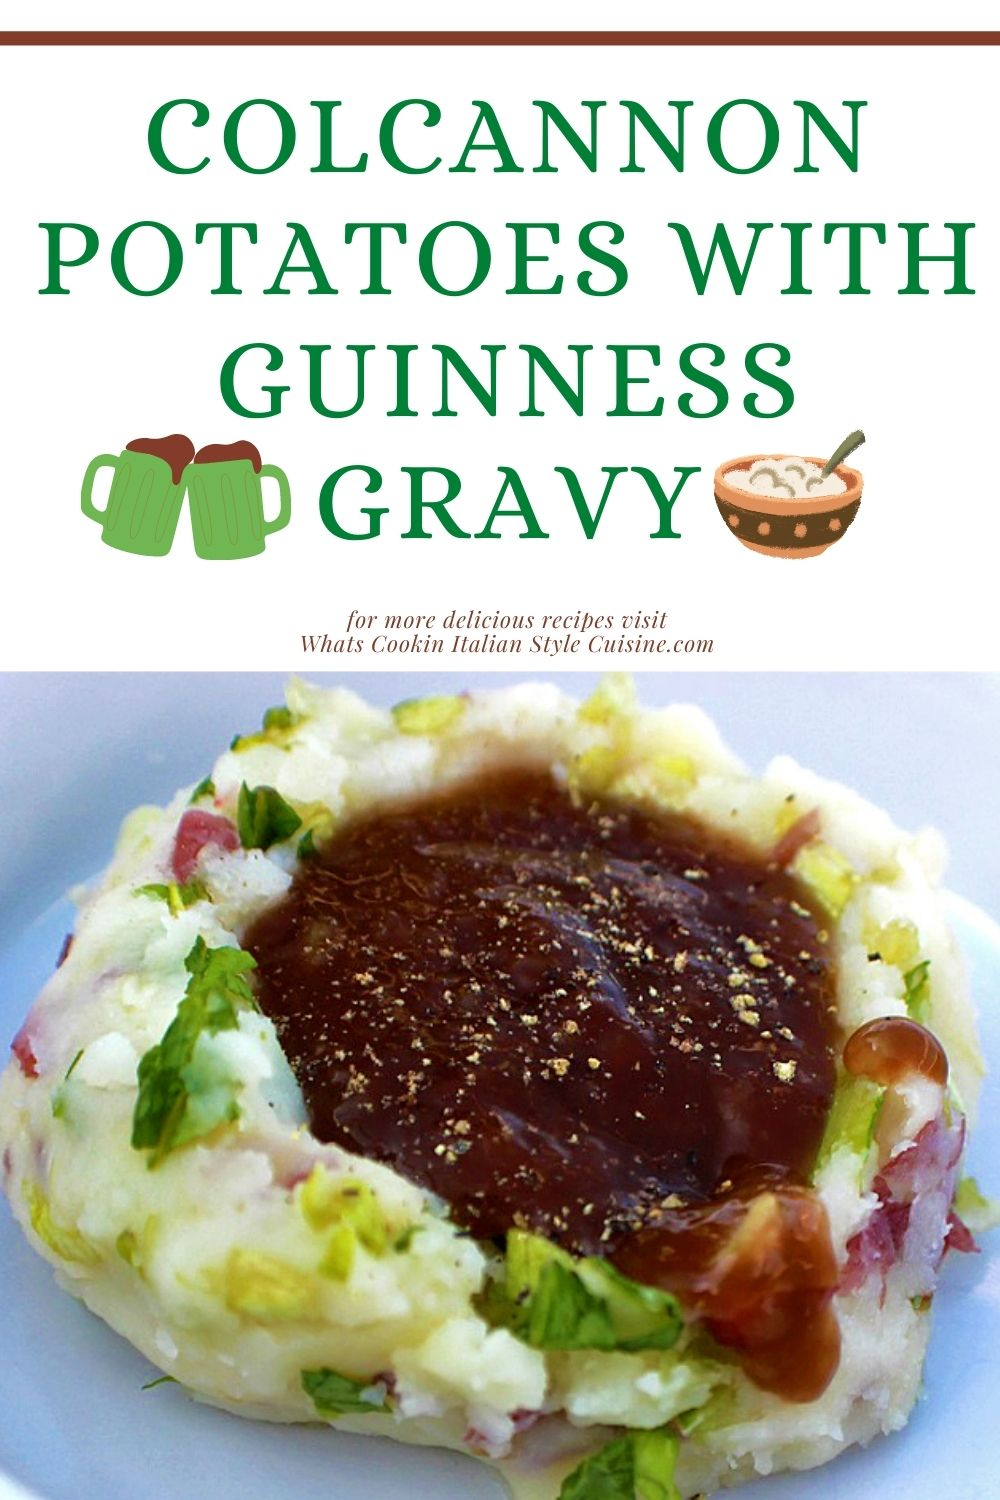 this is a pin for later with mashed potatoes and gravy Irish style